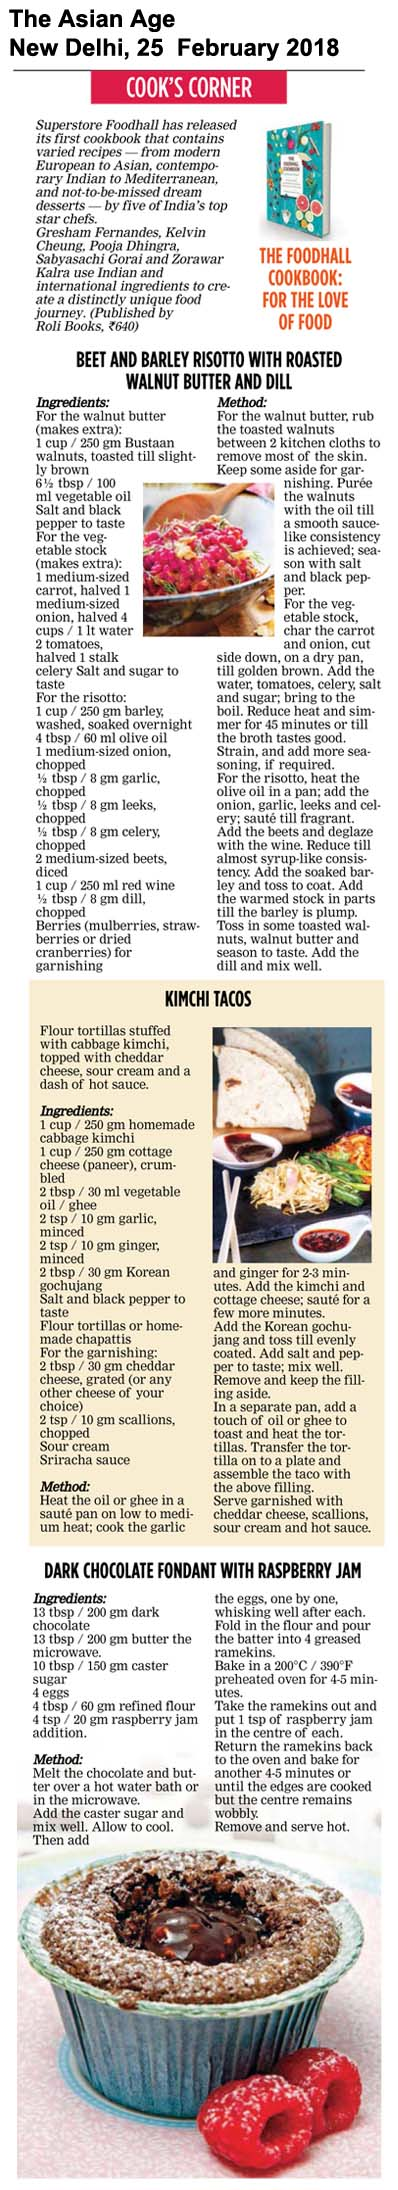 Foodhall Cookbook<br><span>The Asian  Age, New Delhi</span>